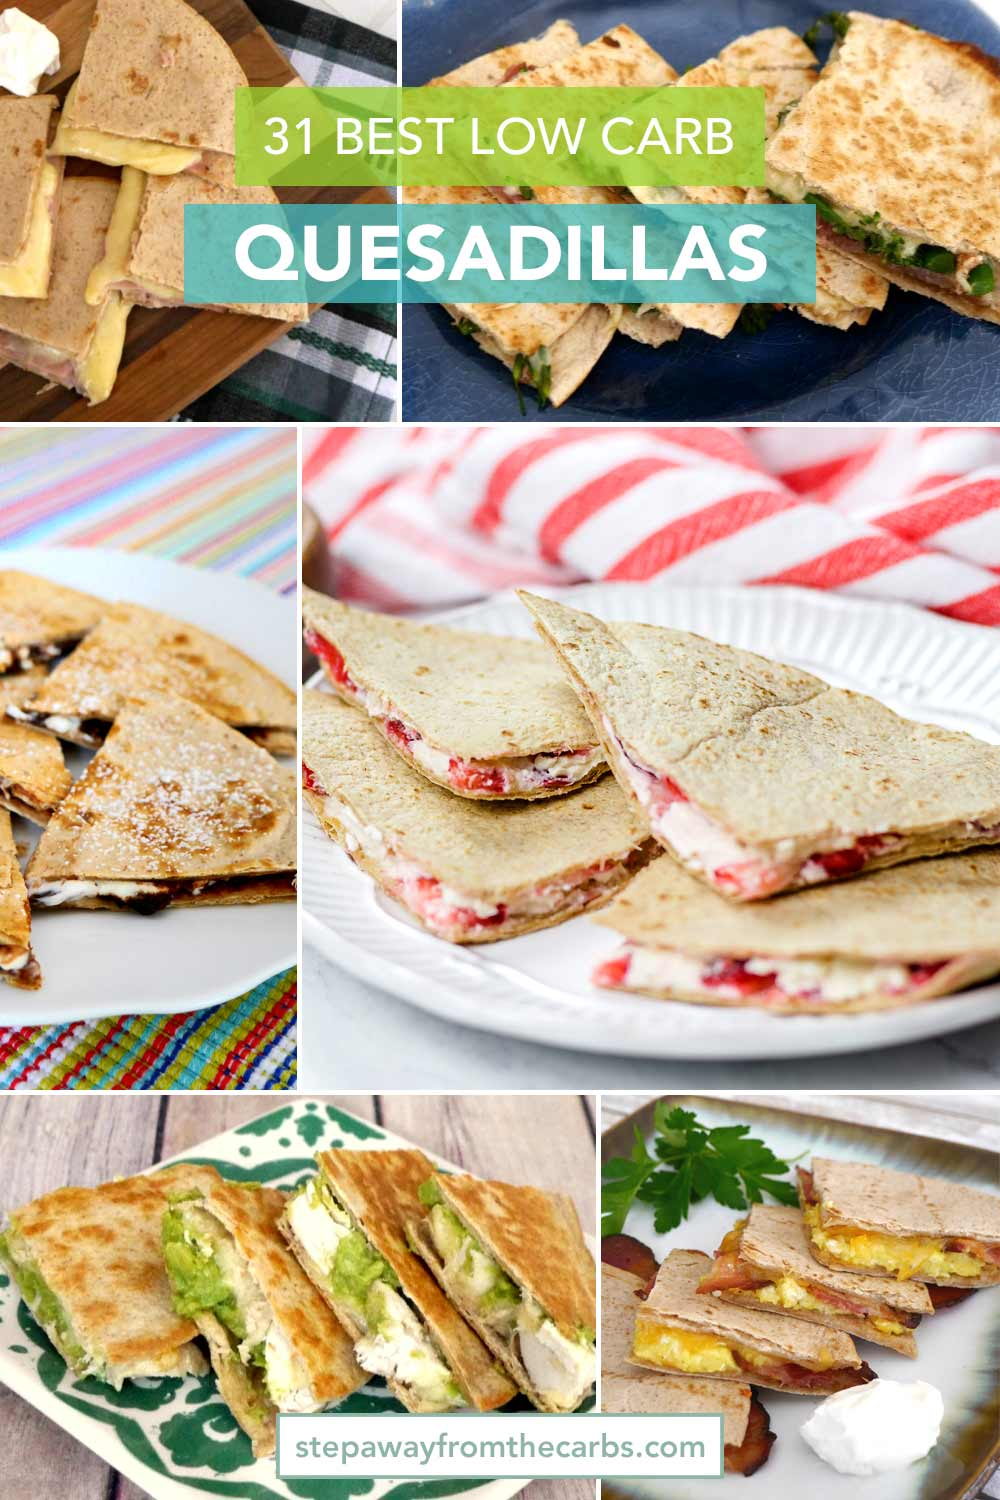 The Best Low Carb Quesadillas